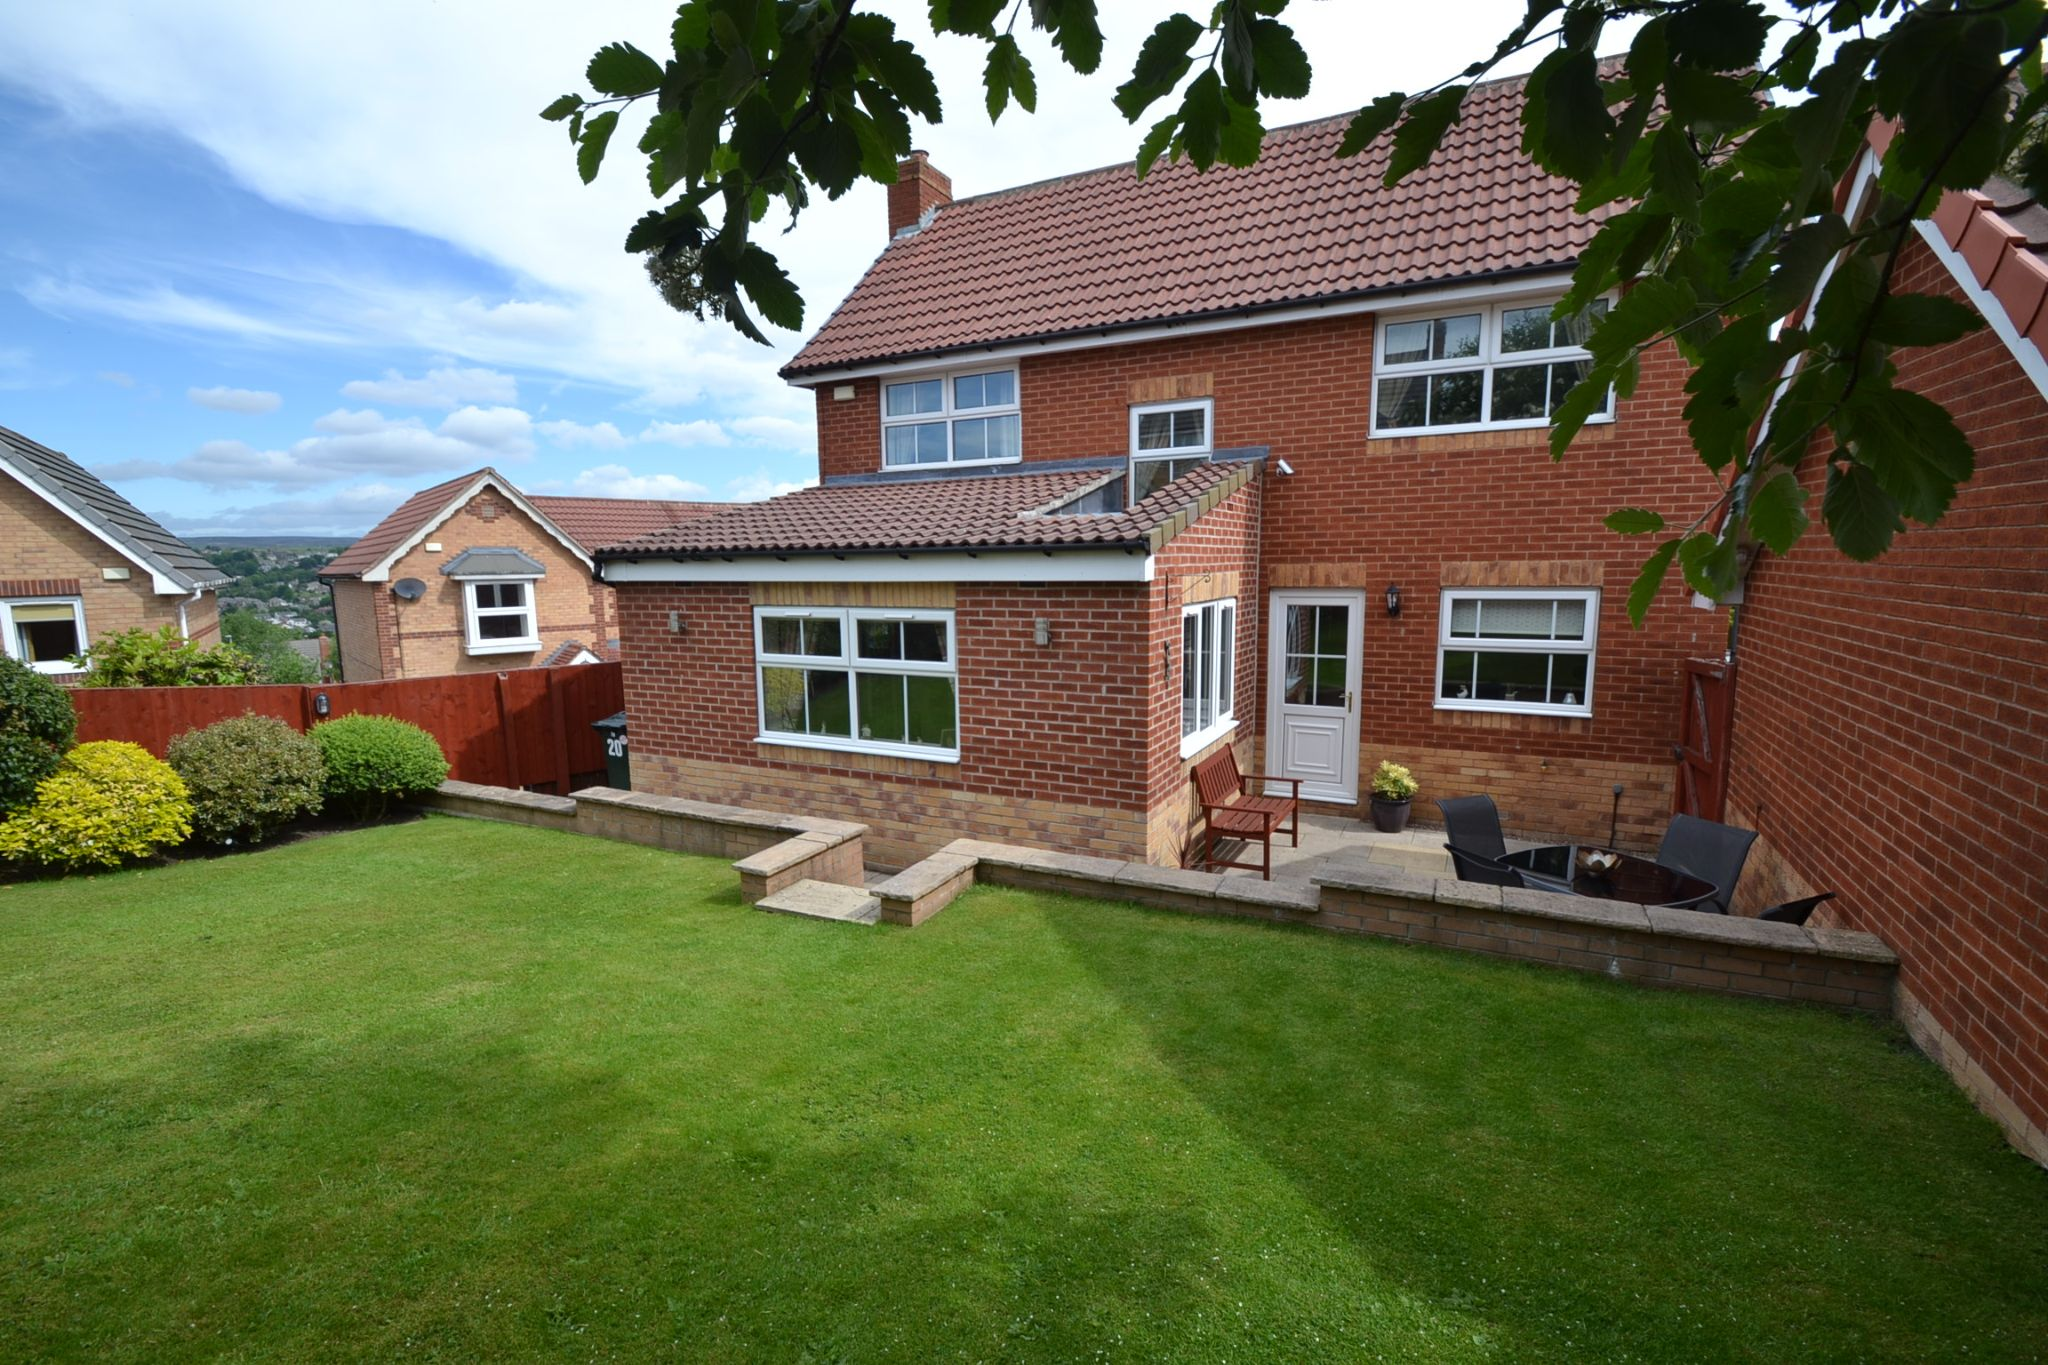 3 Bedroom Detached House For Sale - Photograph 26